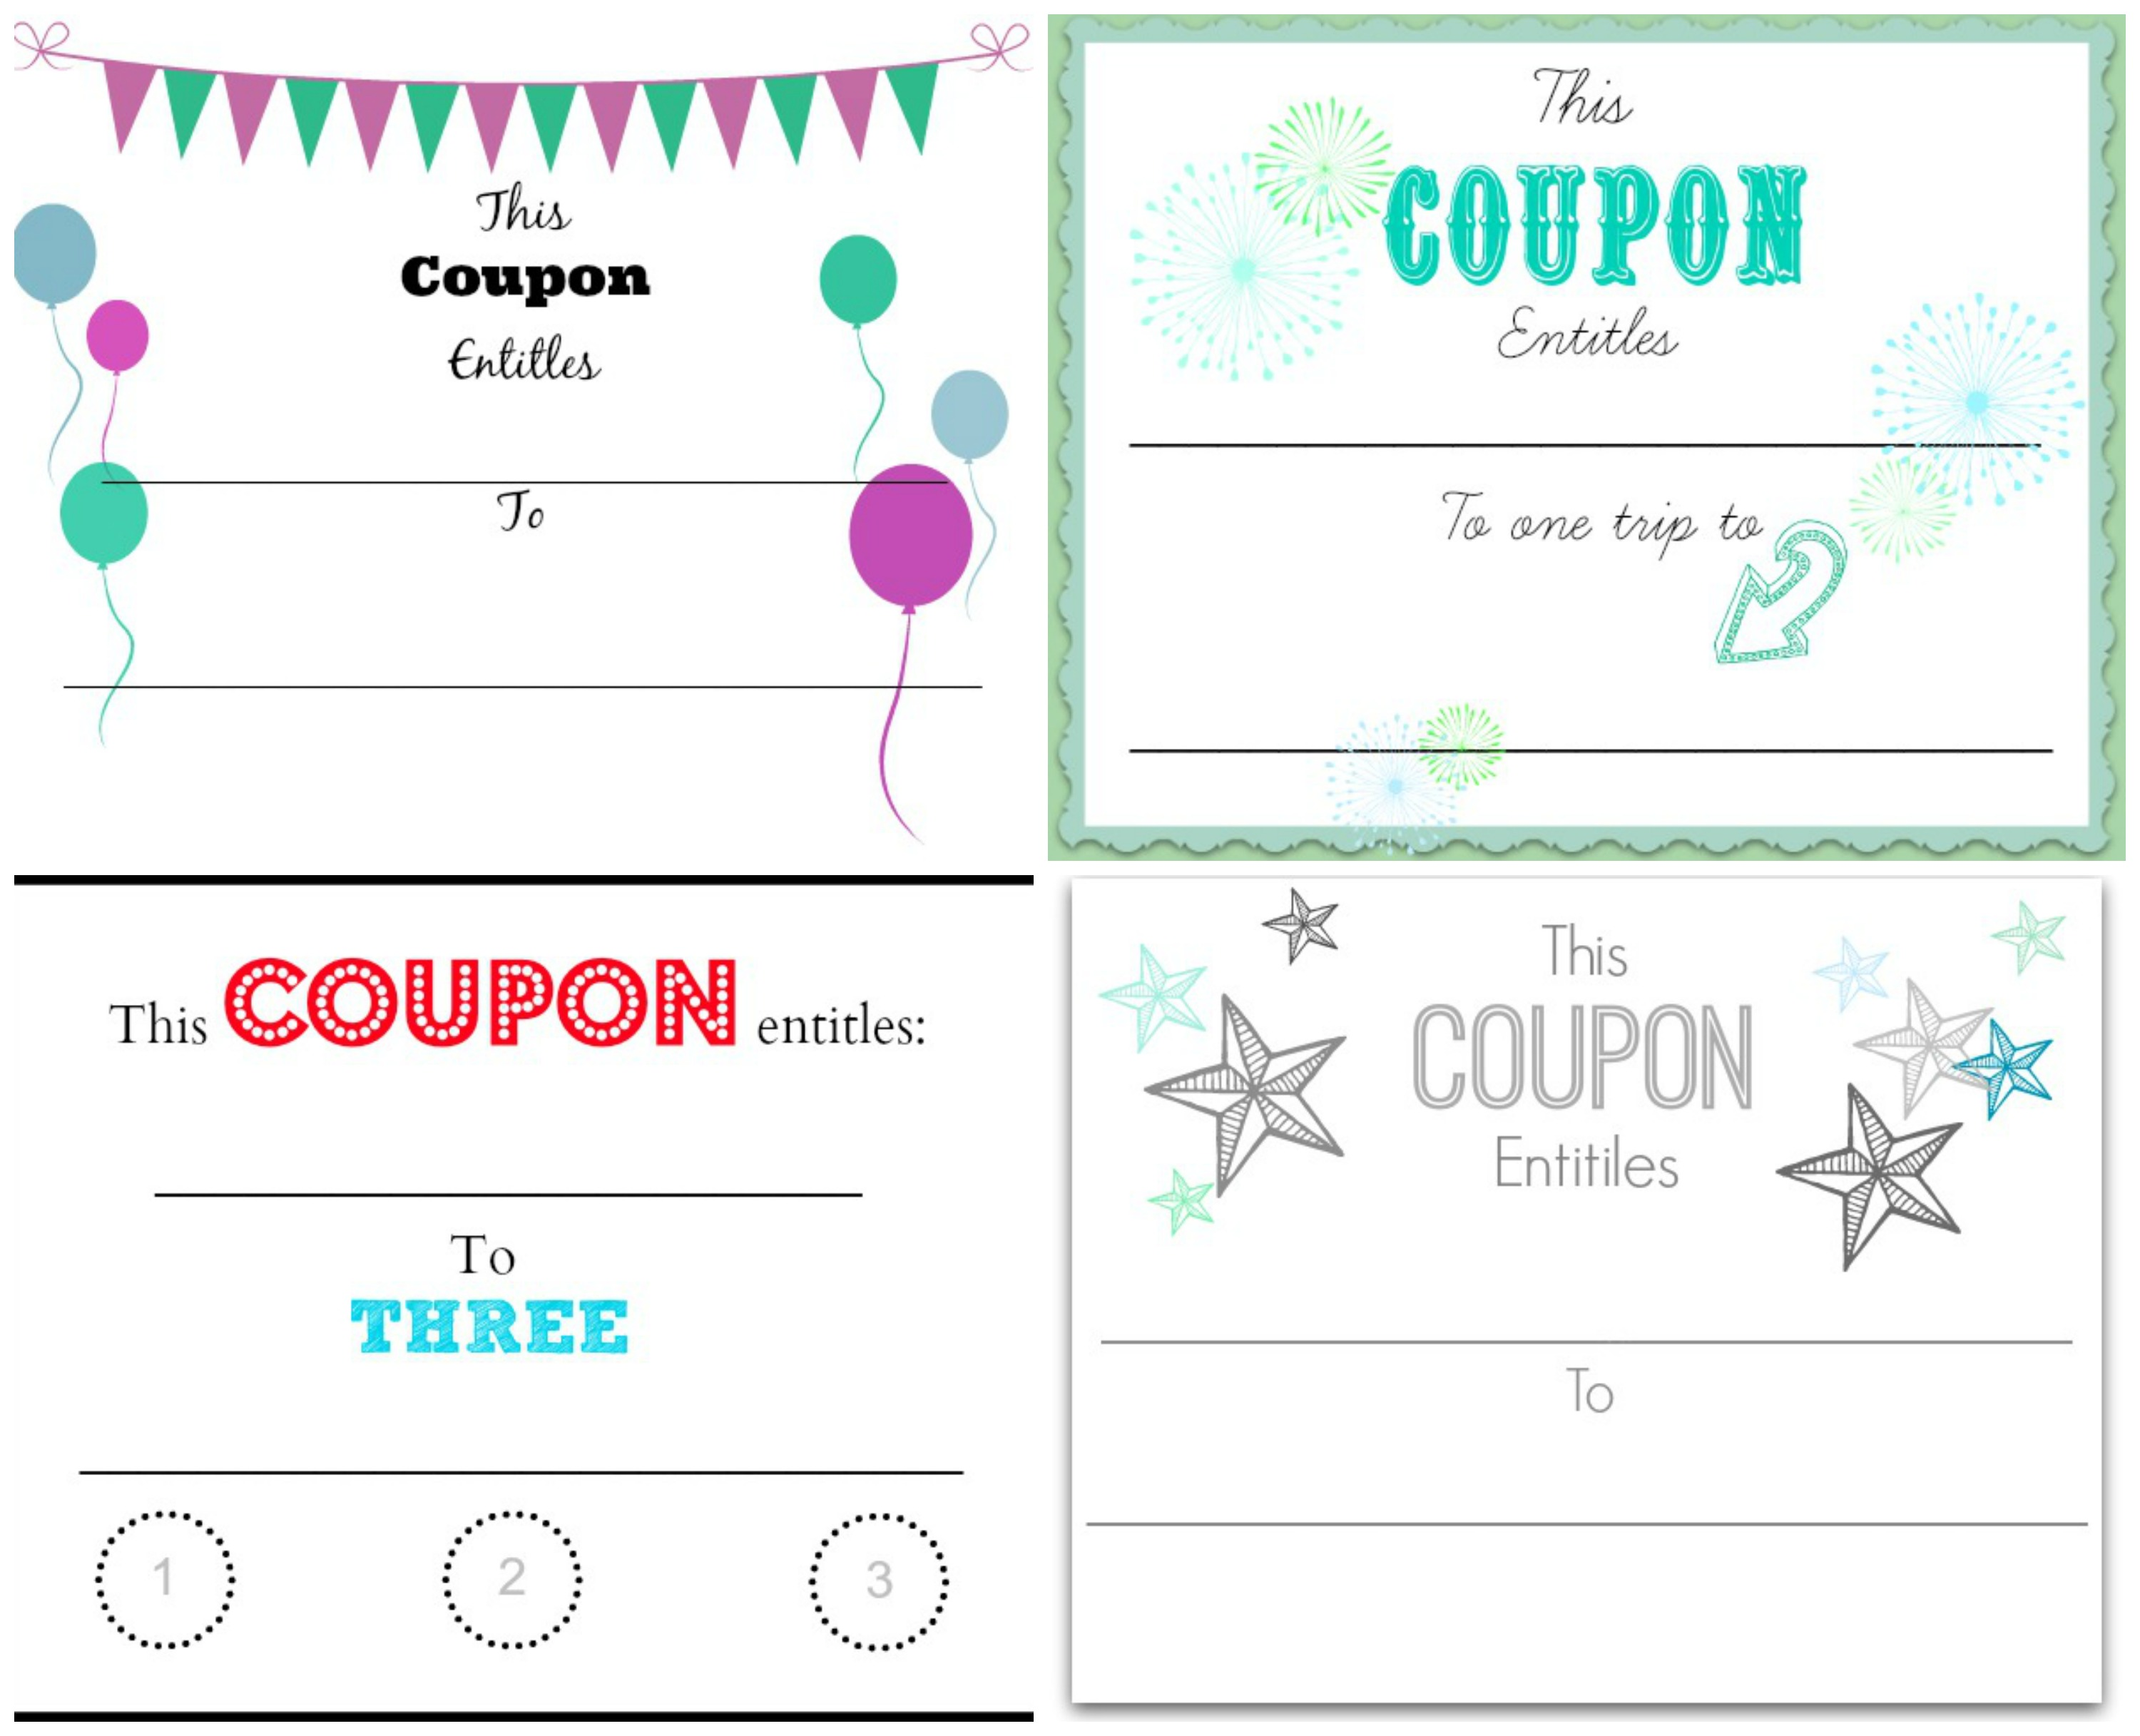 ... Coupon Collage  Free Christmas Voucher Template